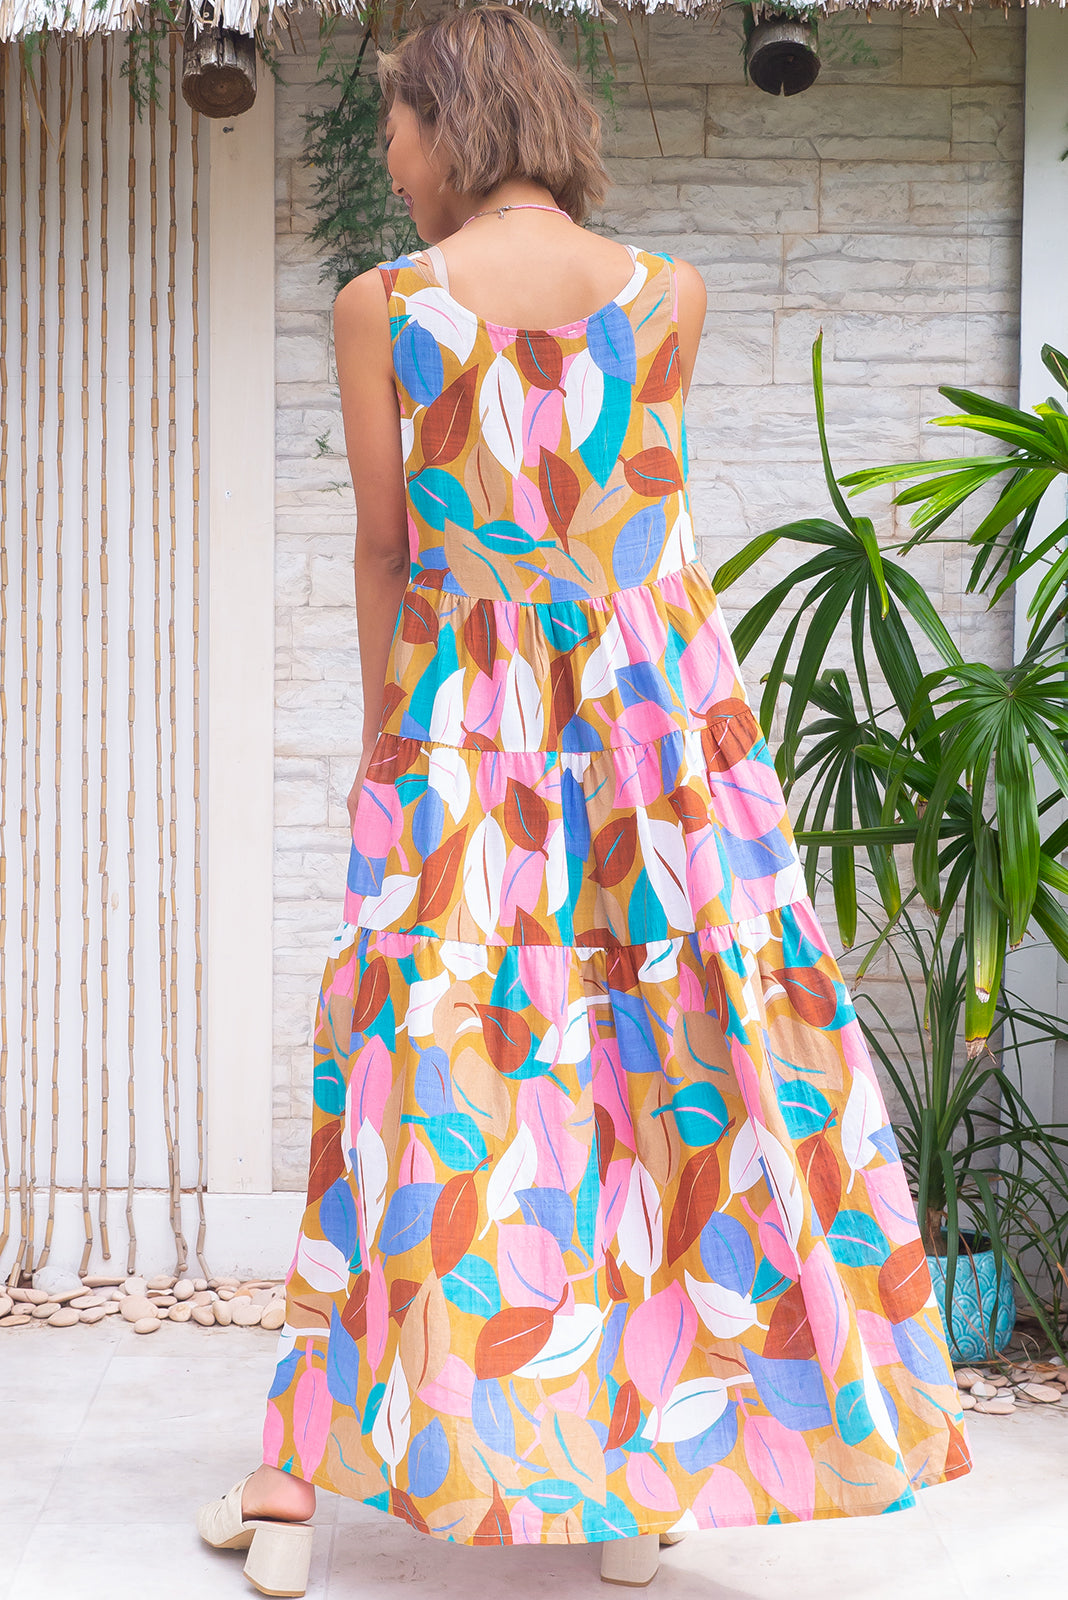 The Jina Magic Leaf Maxi Dress is a loose style dress featuring scooped neckline, lined bust, side pockets, tiered, full skirt and 70% cotton, 30% rayon in caramel base with white, pink, blue, teal and chocolate leaf print.